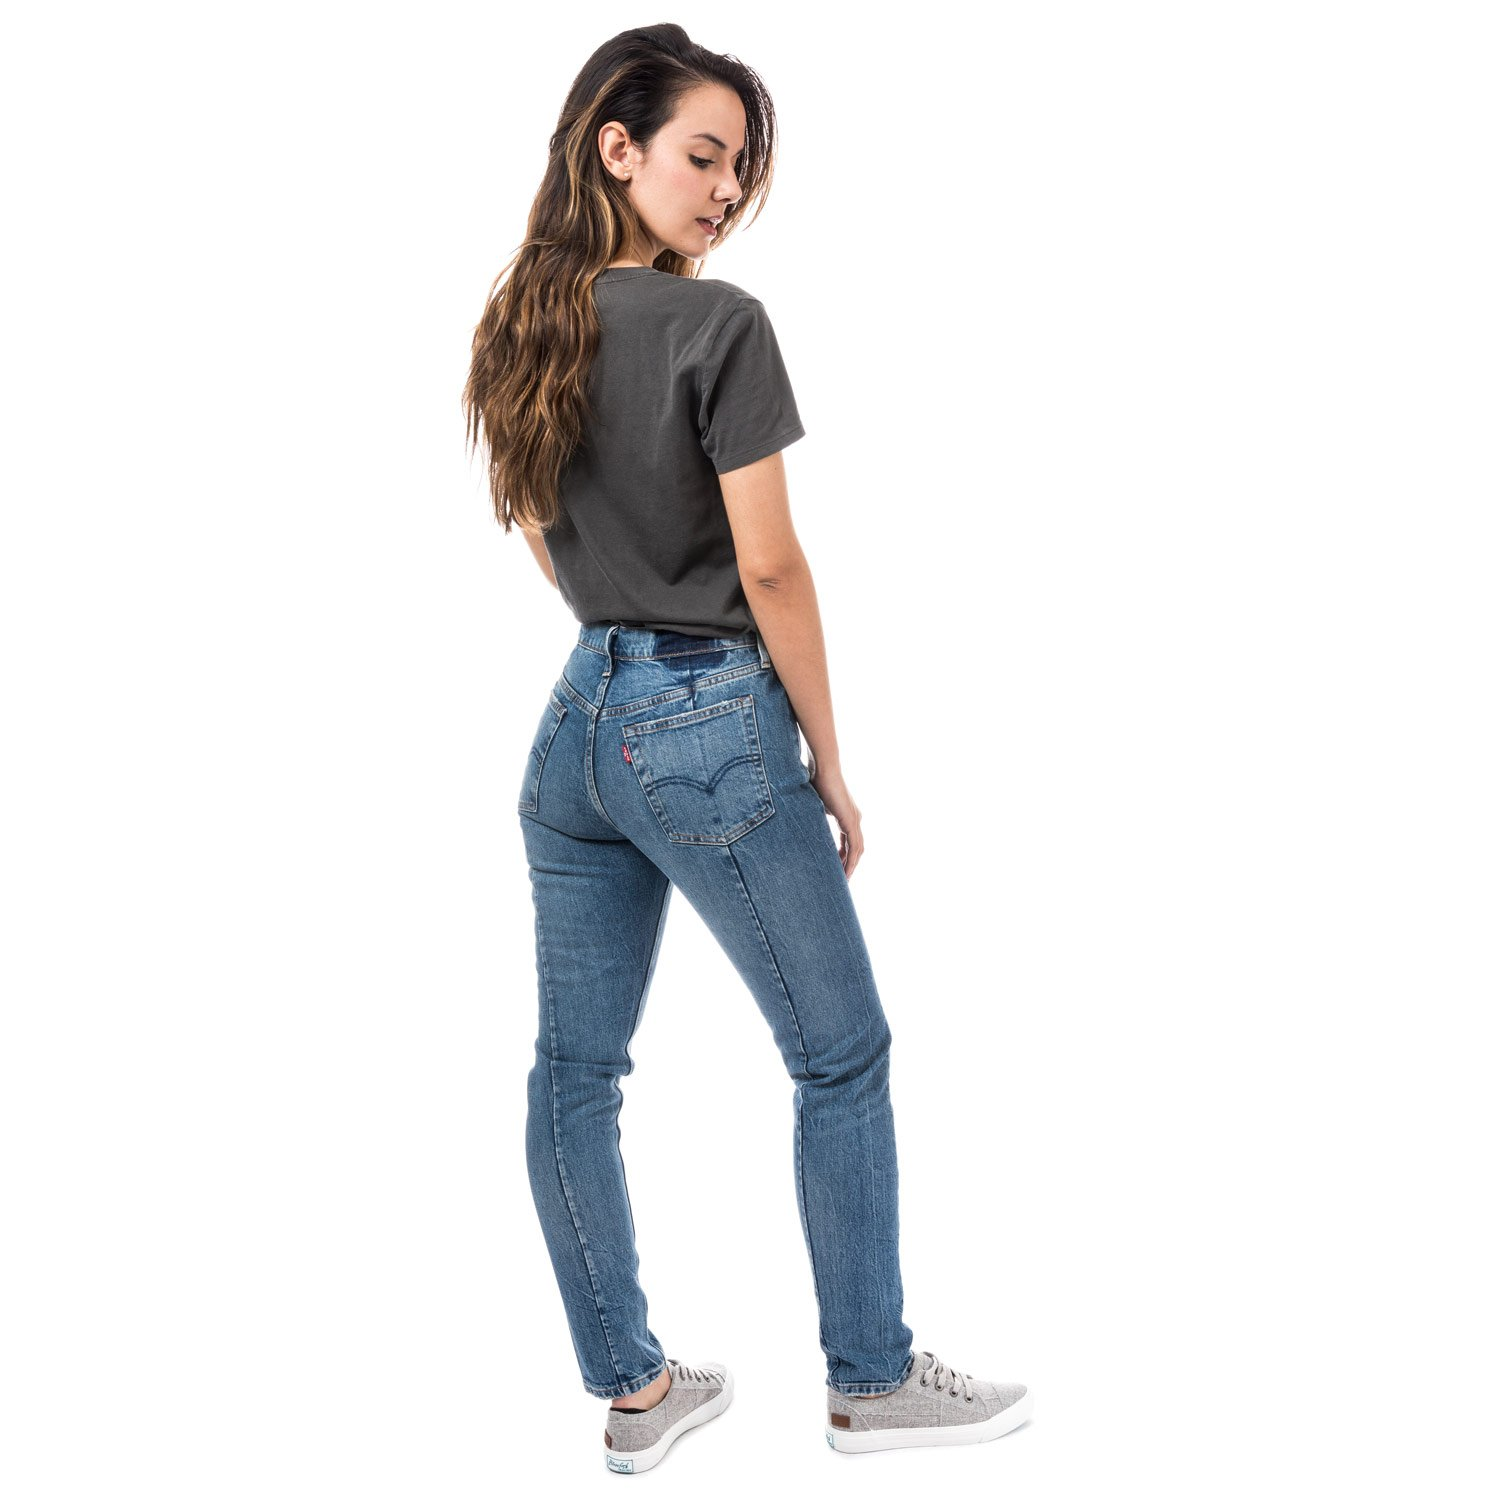 bd666f78 Levi's Womens Womens 501 Skinny Altered Moody Blues Jeans in Denim - 29S:  Levis: Amazon.co.uk: Clothing